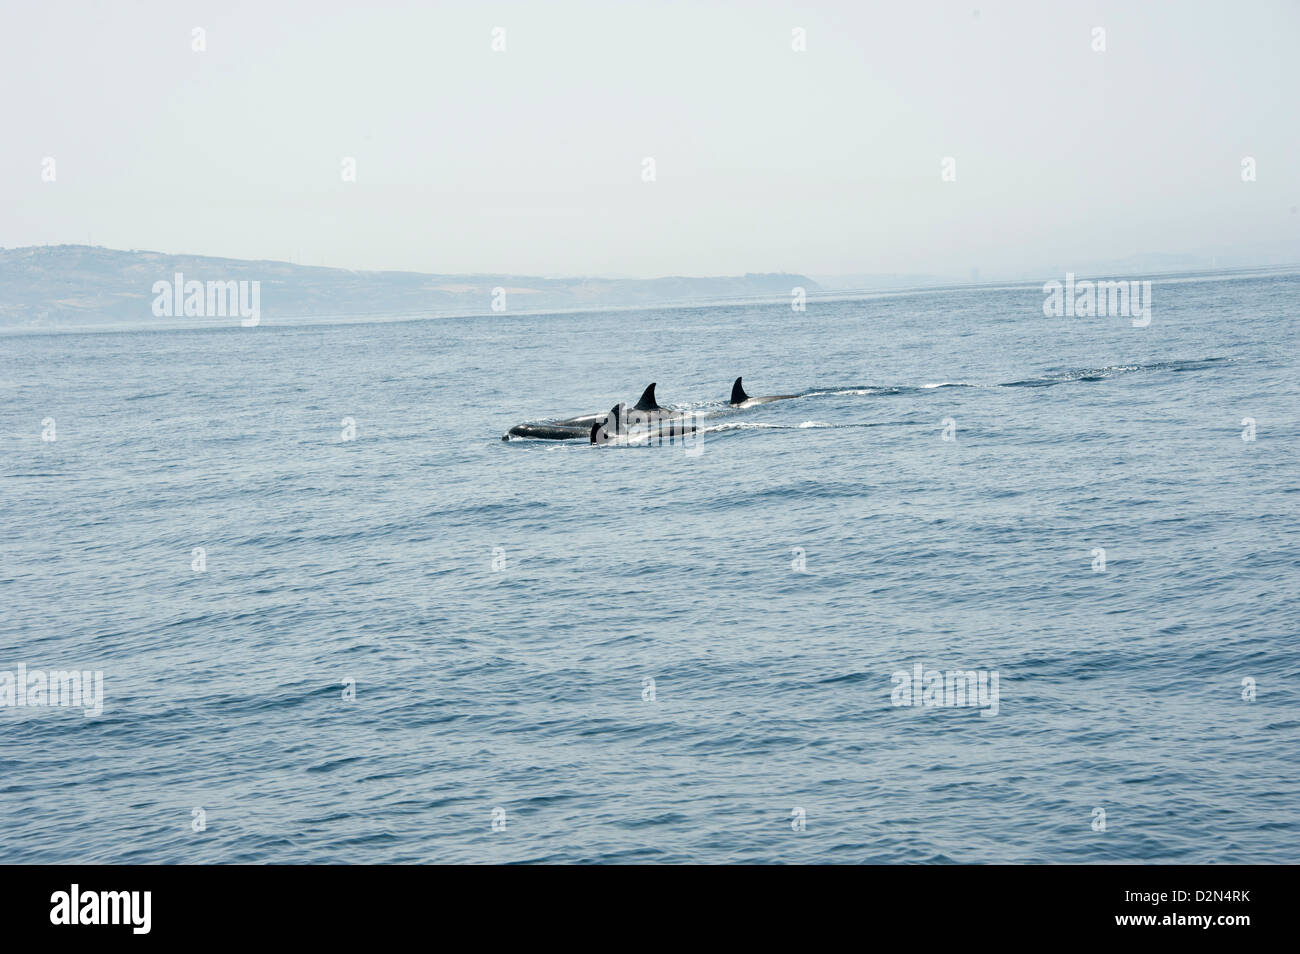 Orcas in the Straits of Gibraltar, Europe - Stock Image